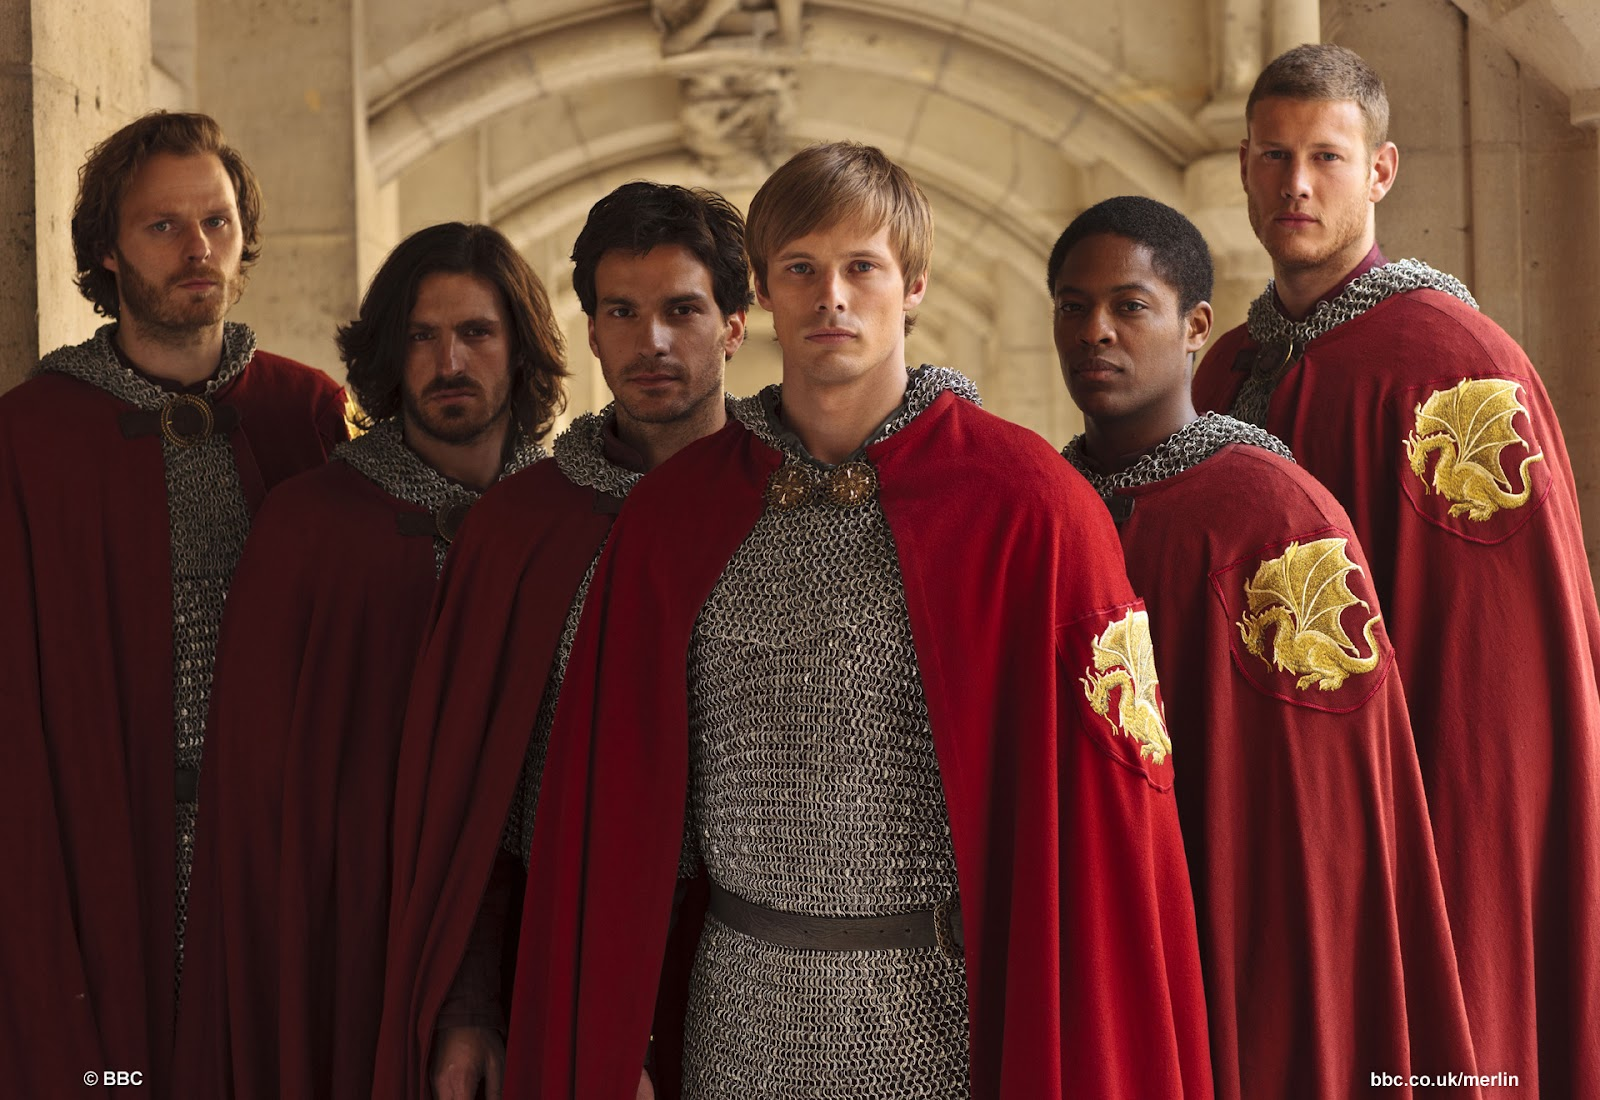 Rupert Young is Sir Leon, Eoin Macken is Sir Gwaine, Santiago Cabrera is Sir Lancelot, Bradley James is King Arthur, Adetomiwa Edun is Sir Elyan and Tom Hopper is Sir Percival